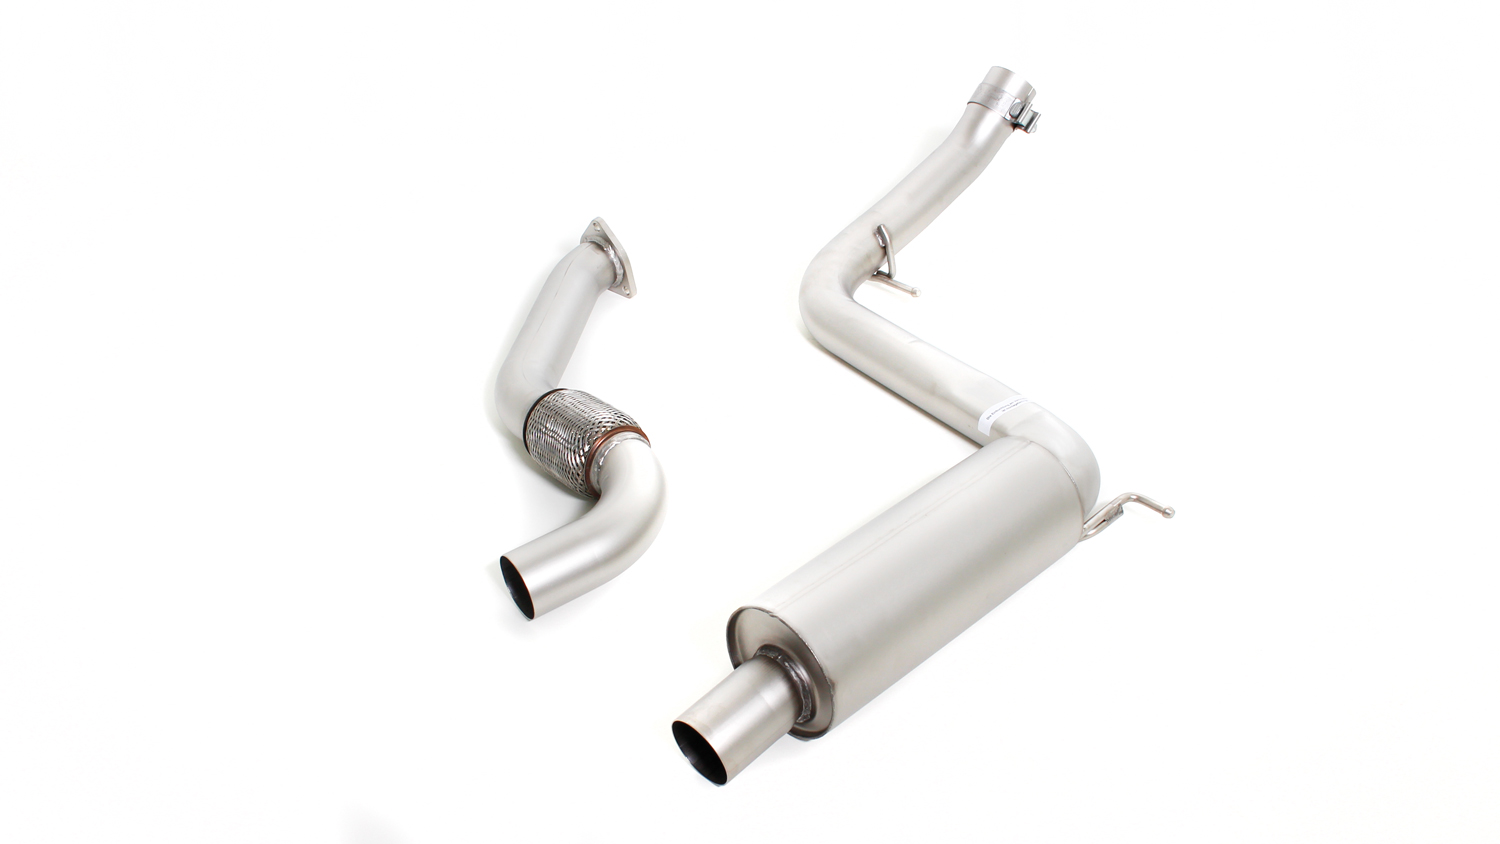 remus front silencer exhaust for honda civic type r fk2 2015 fr r tuning maha dyno rolling road tuning stage 1 2 3 engine performance upgrades